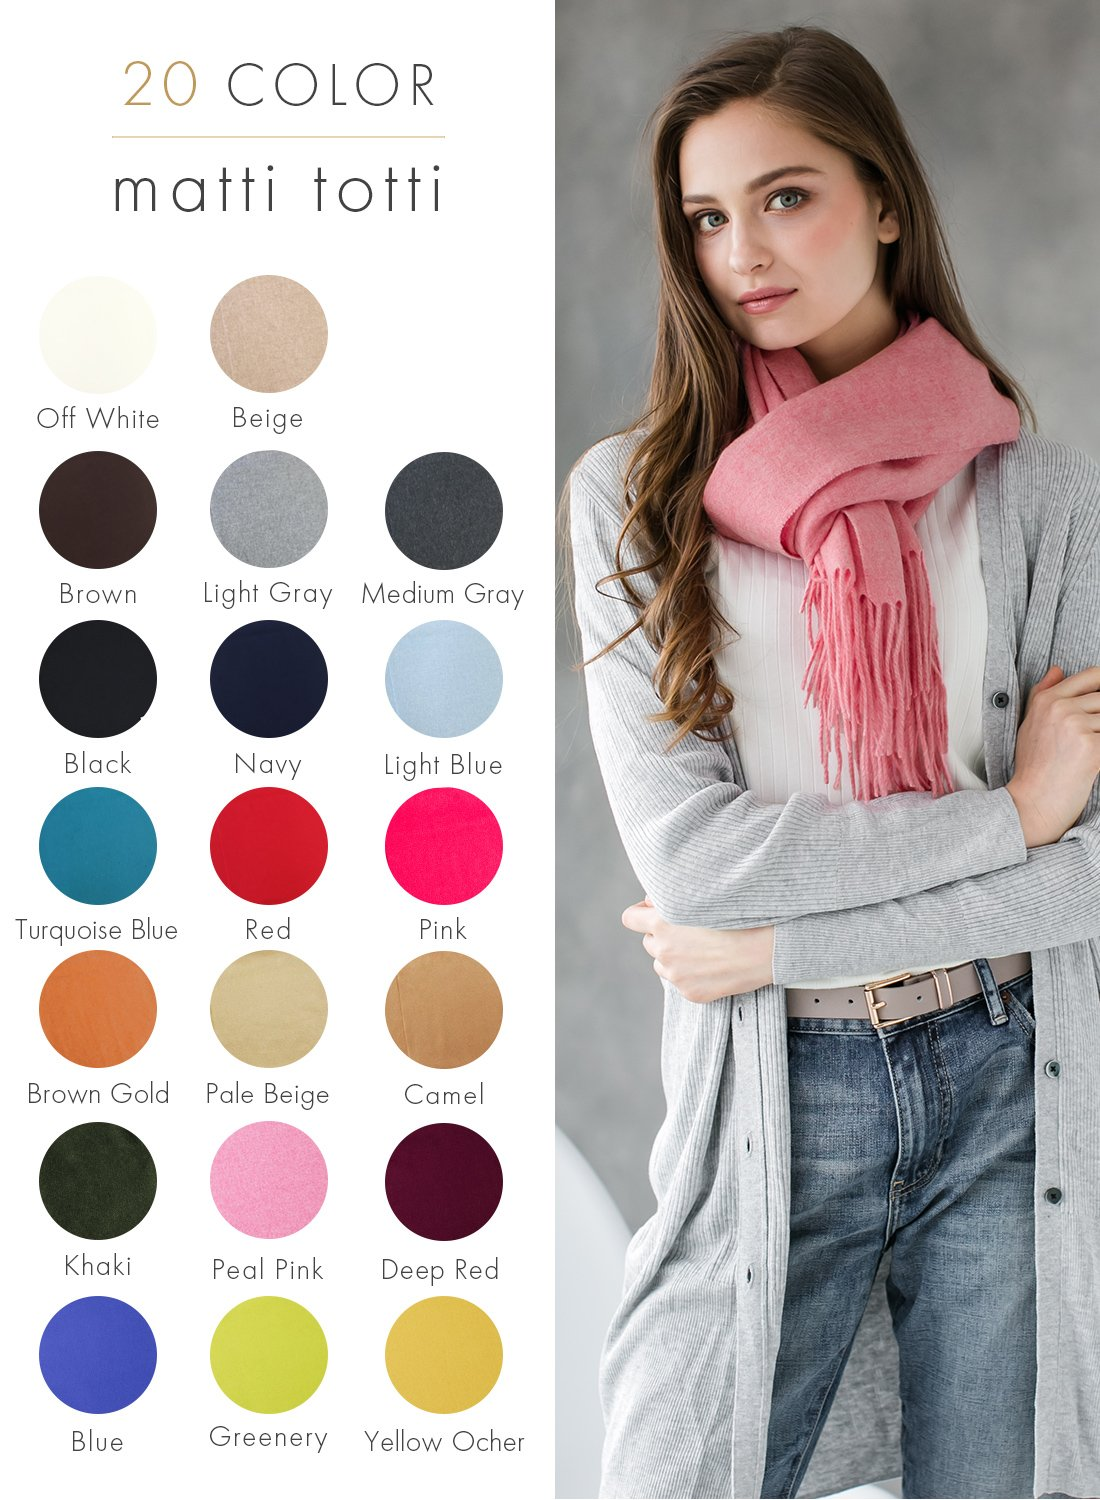 Pale Pink 100% Cashmere Shawl Stole Women Gift Scarves Wrap Blanket A1814B1-18 by matti totti (Image #2)